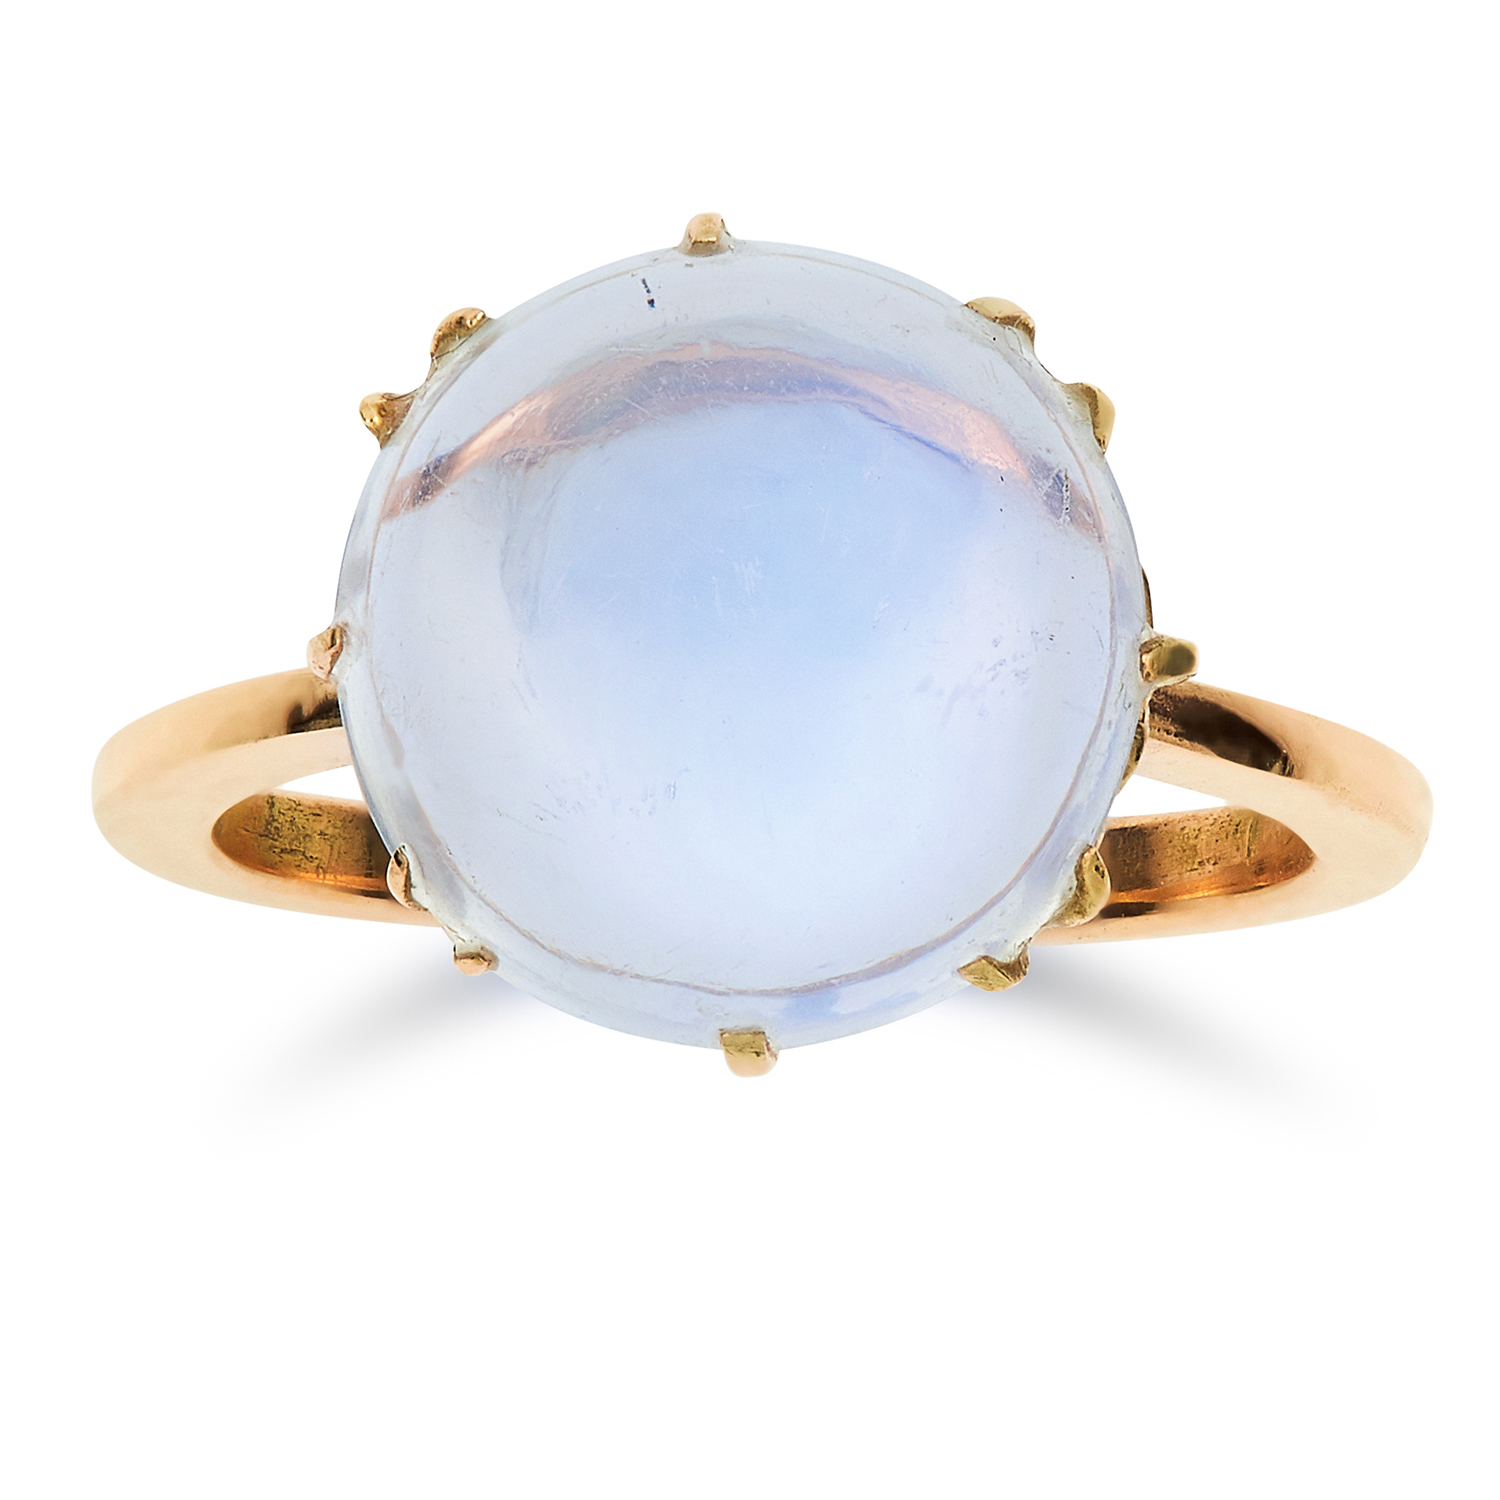 Los 15 - ANTIQUE MOONSTONE RING set with a circular cabochon moonstone of 5.80 carats, later shank, size